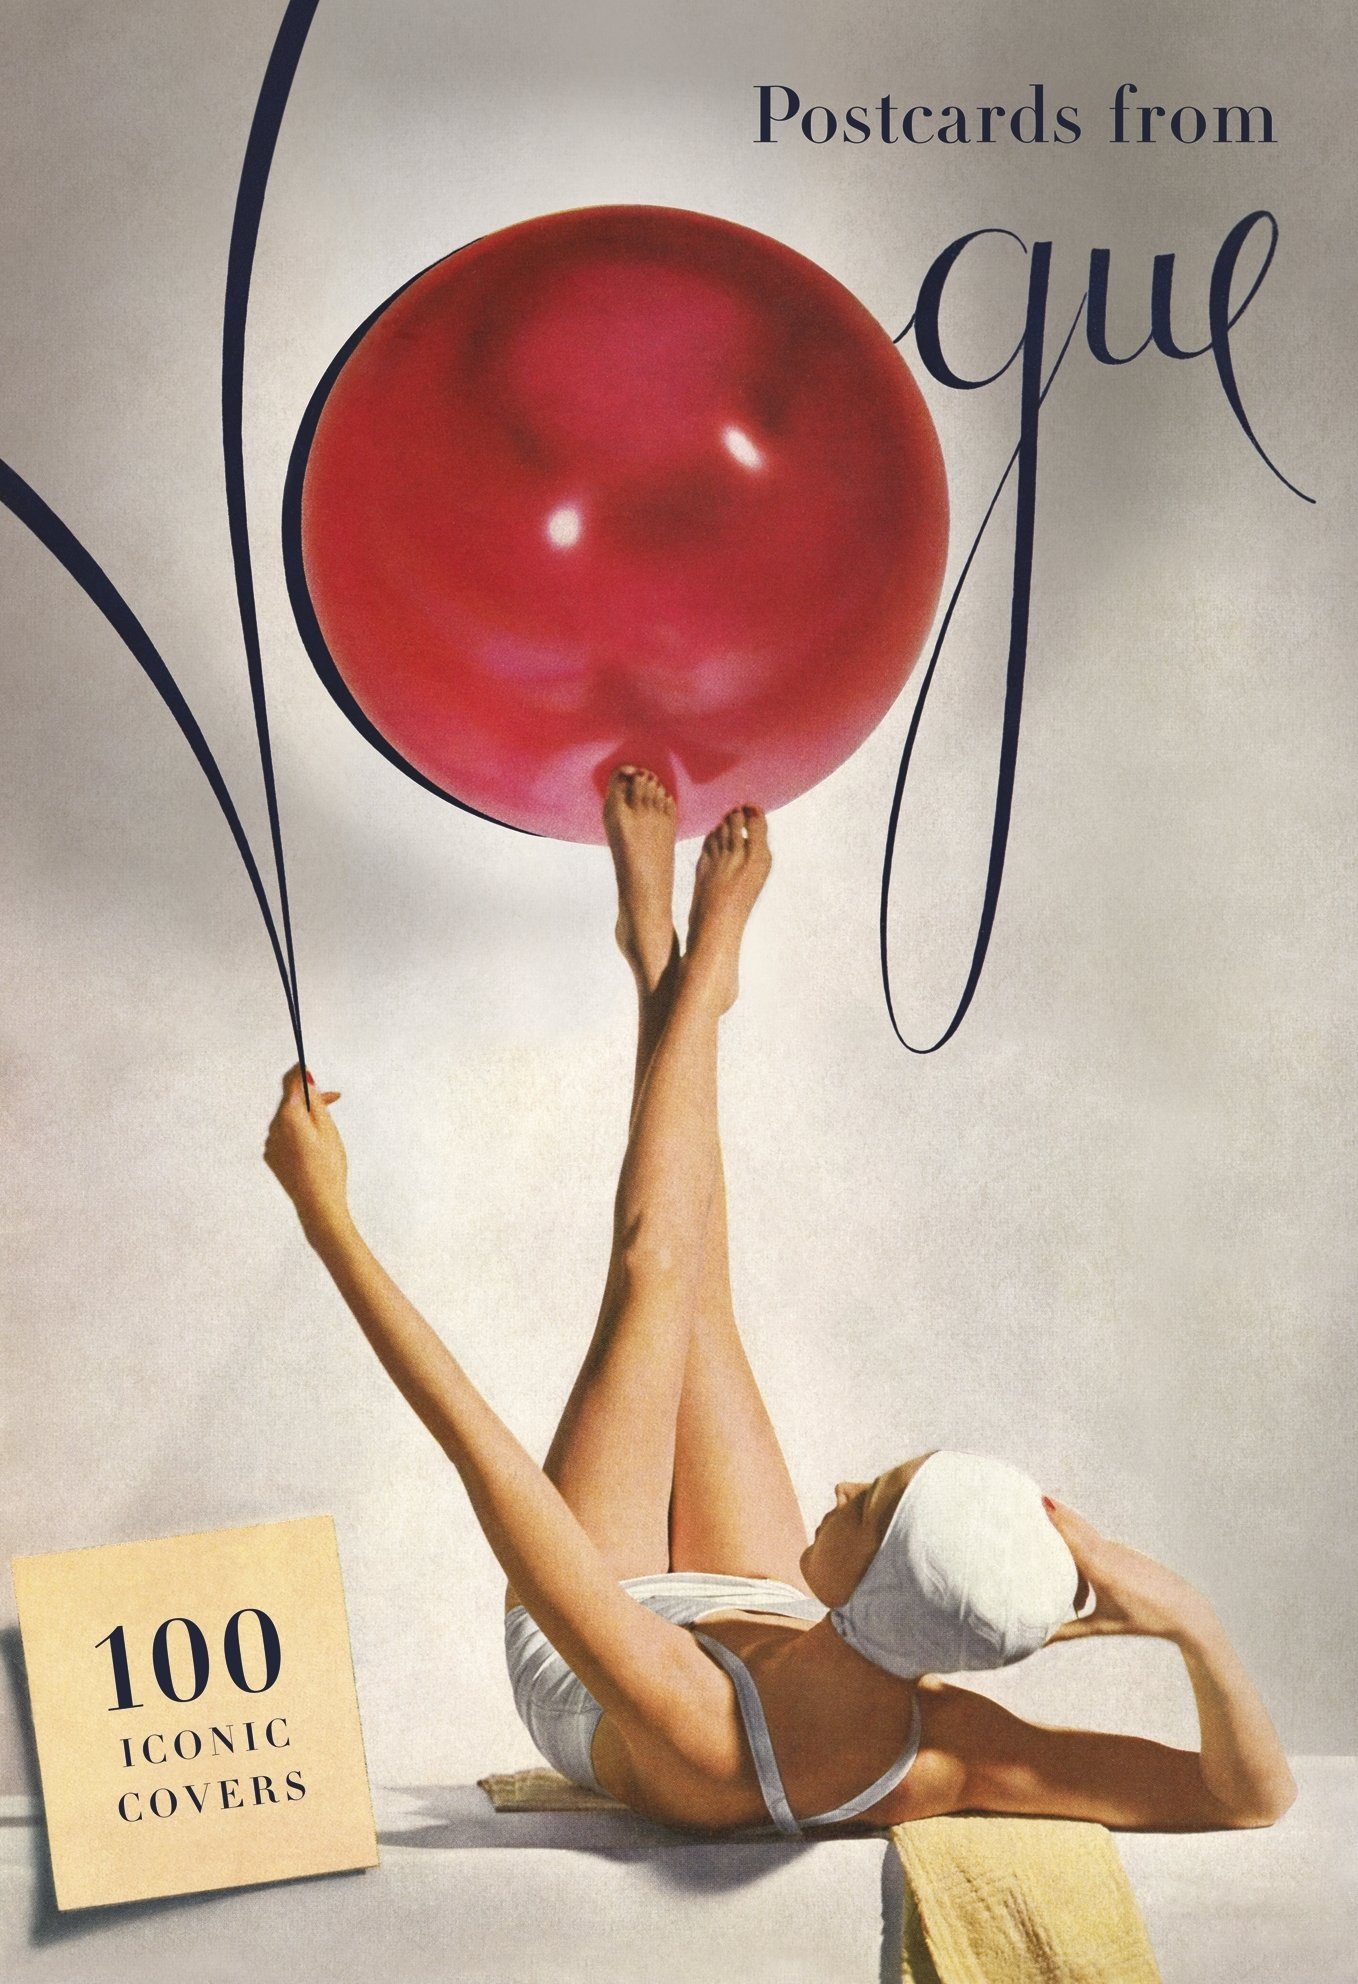 Postcards from Vogue: 100 Iconic Covers by Brand: Penguin Books (Image #2)